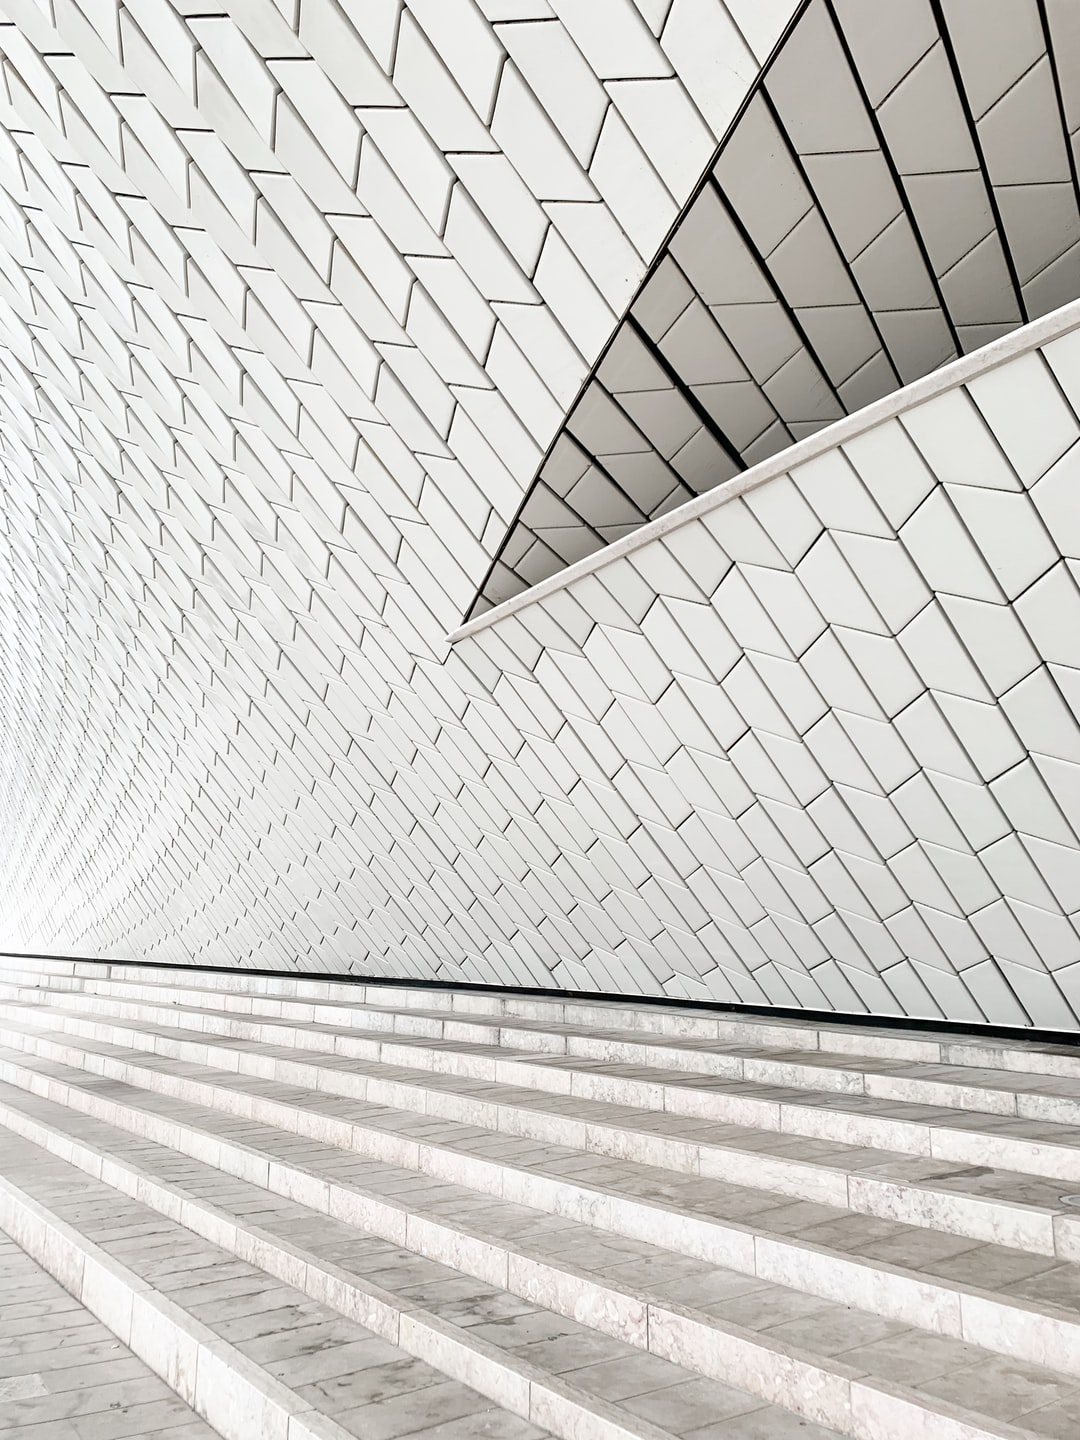 Patterned, textured white wall of a museum in Portugal